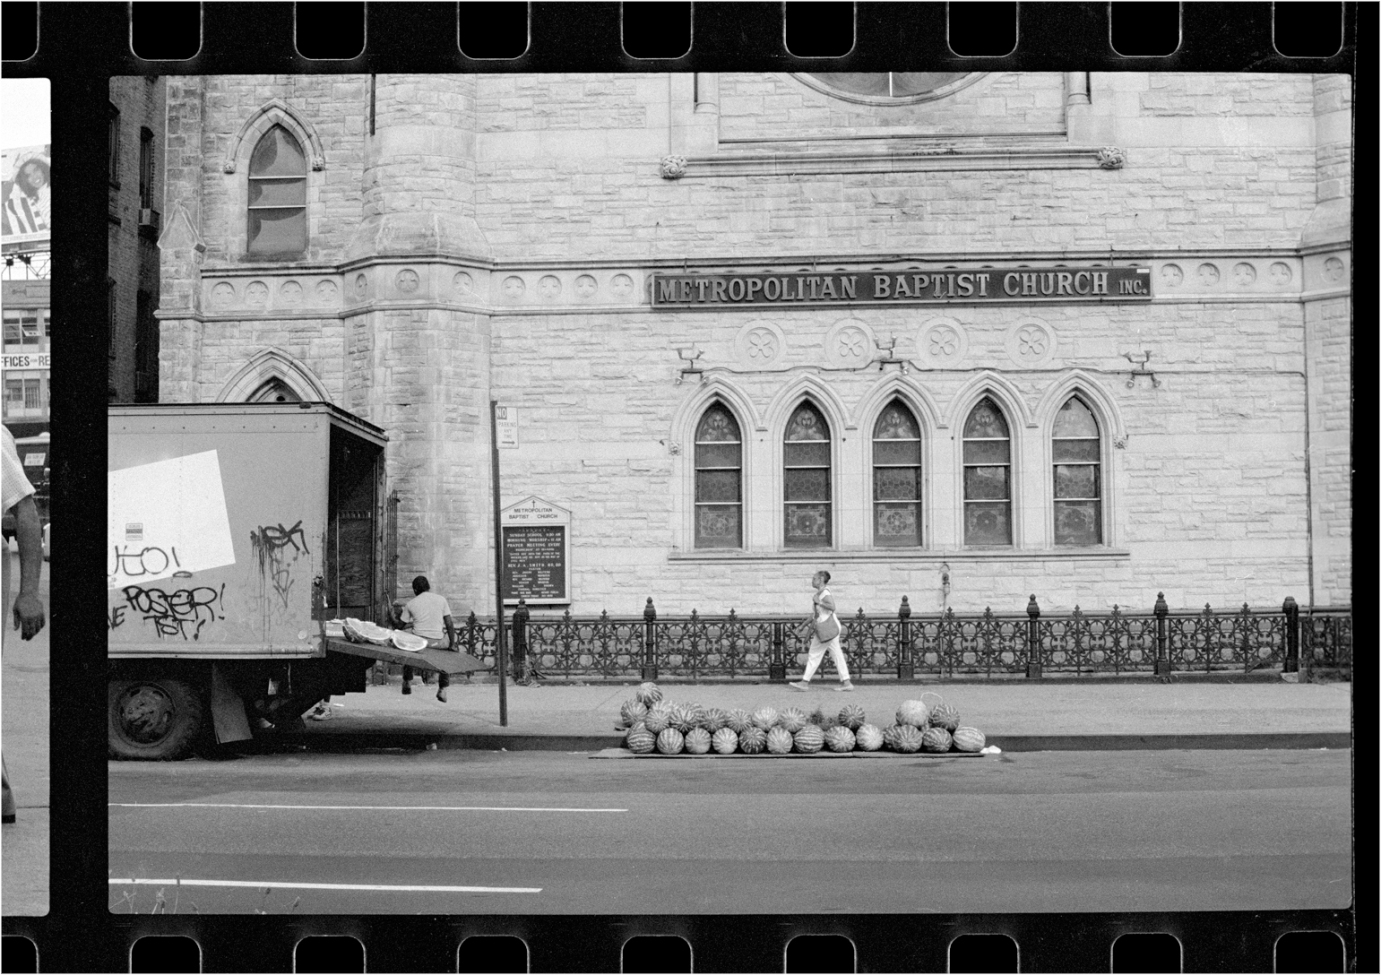 Harlem-Watermelon-Truck-Church-1988 copy